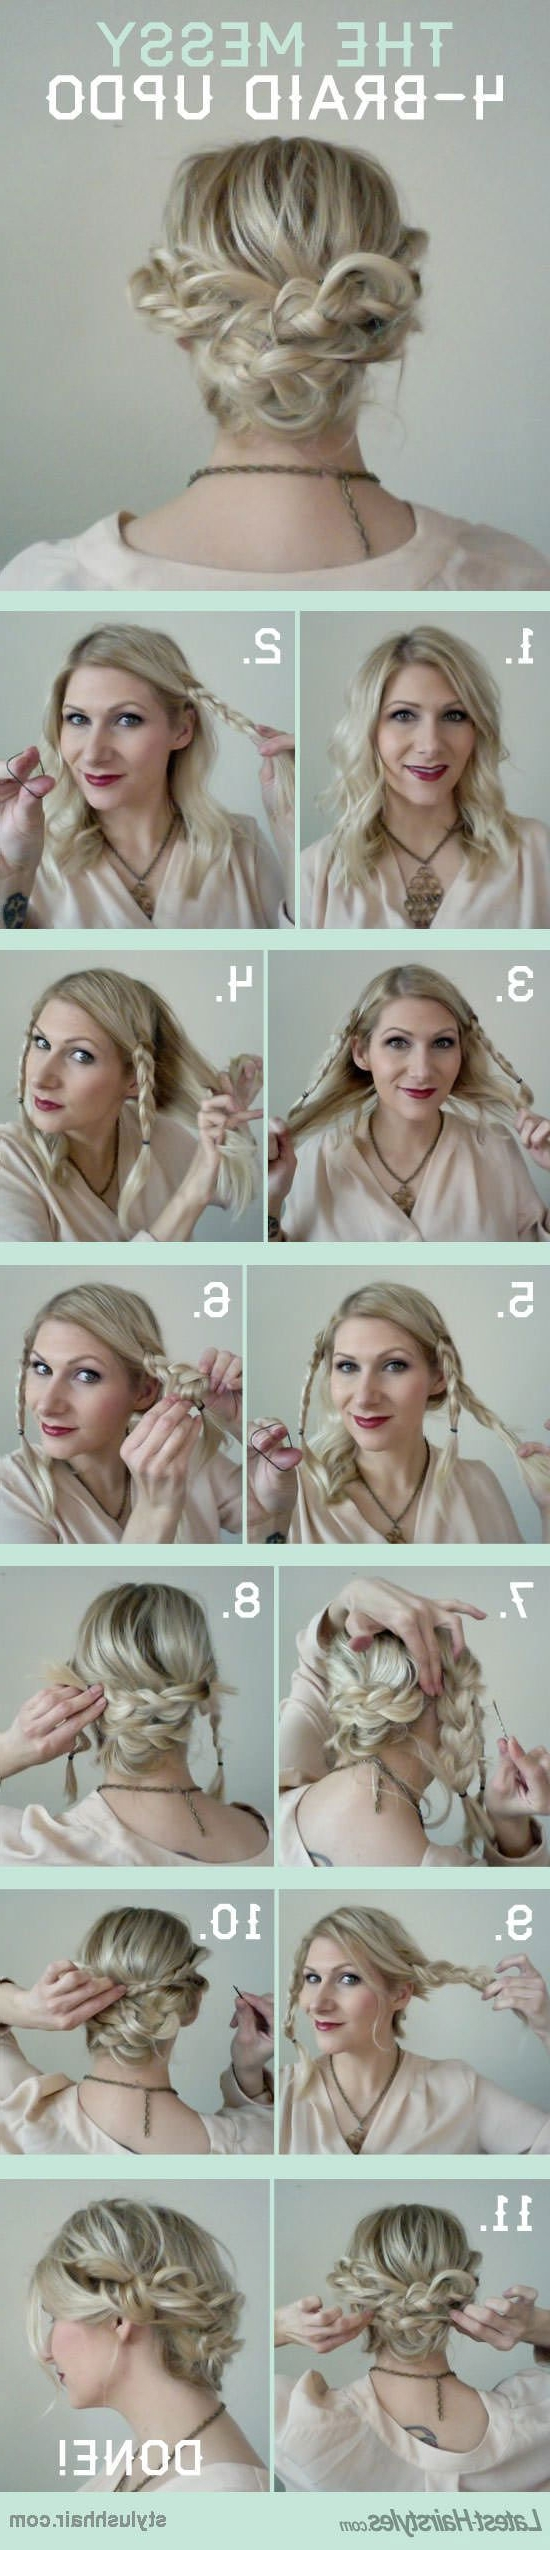 15 Cute And Easy Hairstyle Tutorials For Medium Length Hair – Gurl With Regard To Easy Updos For Thick Medium Length Hair (View 2 of 15)